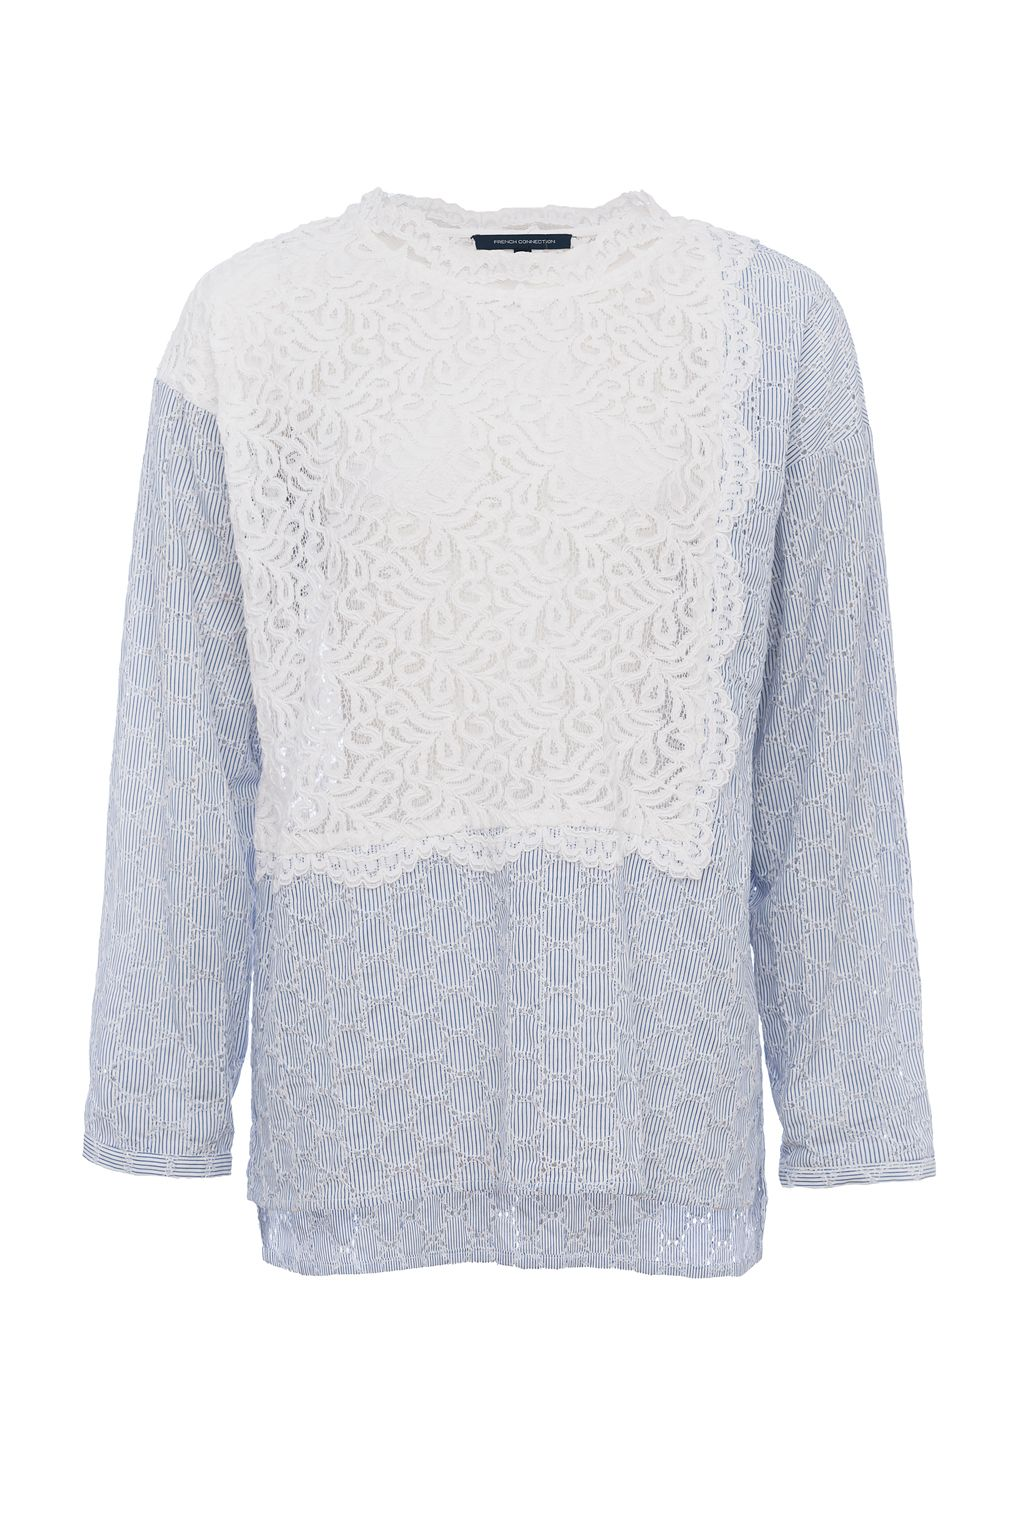 French Connection Oni Lace Mix Shirt, Blue